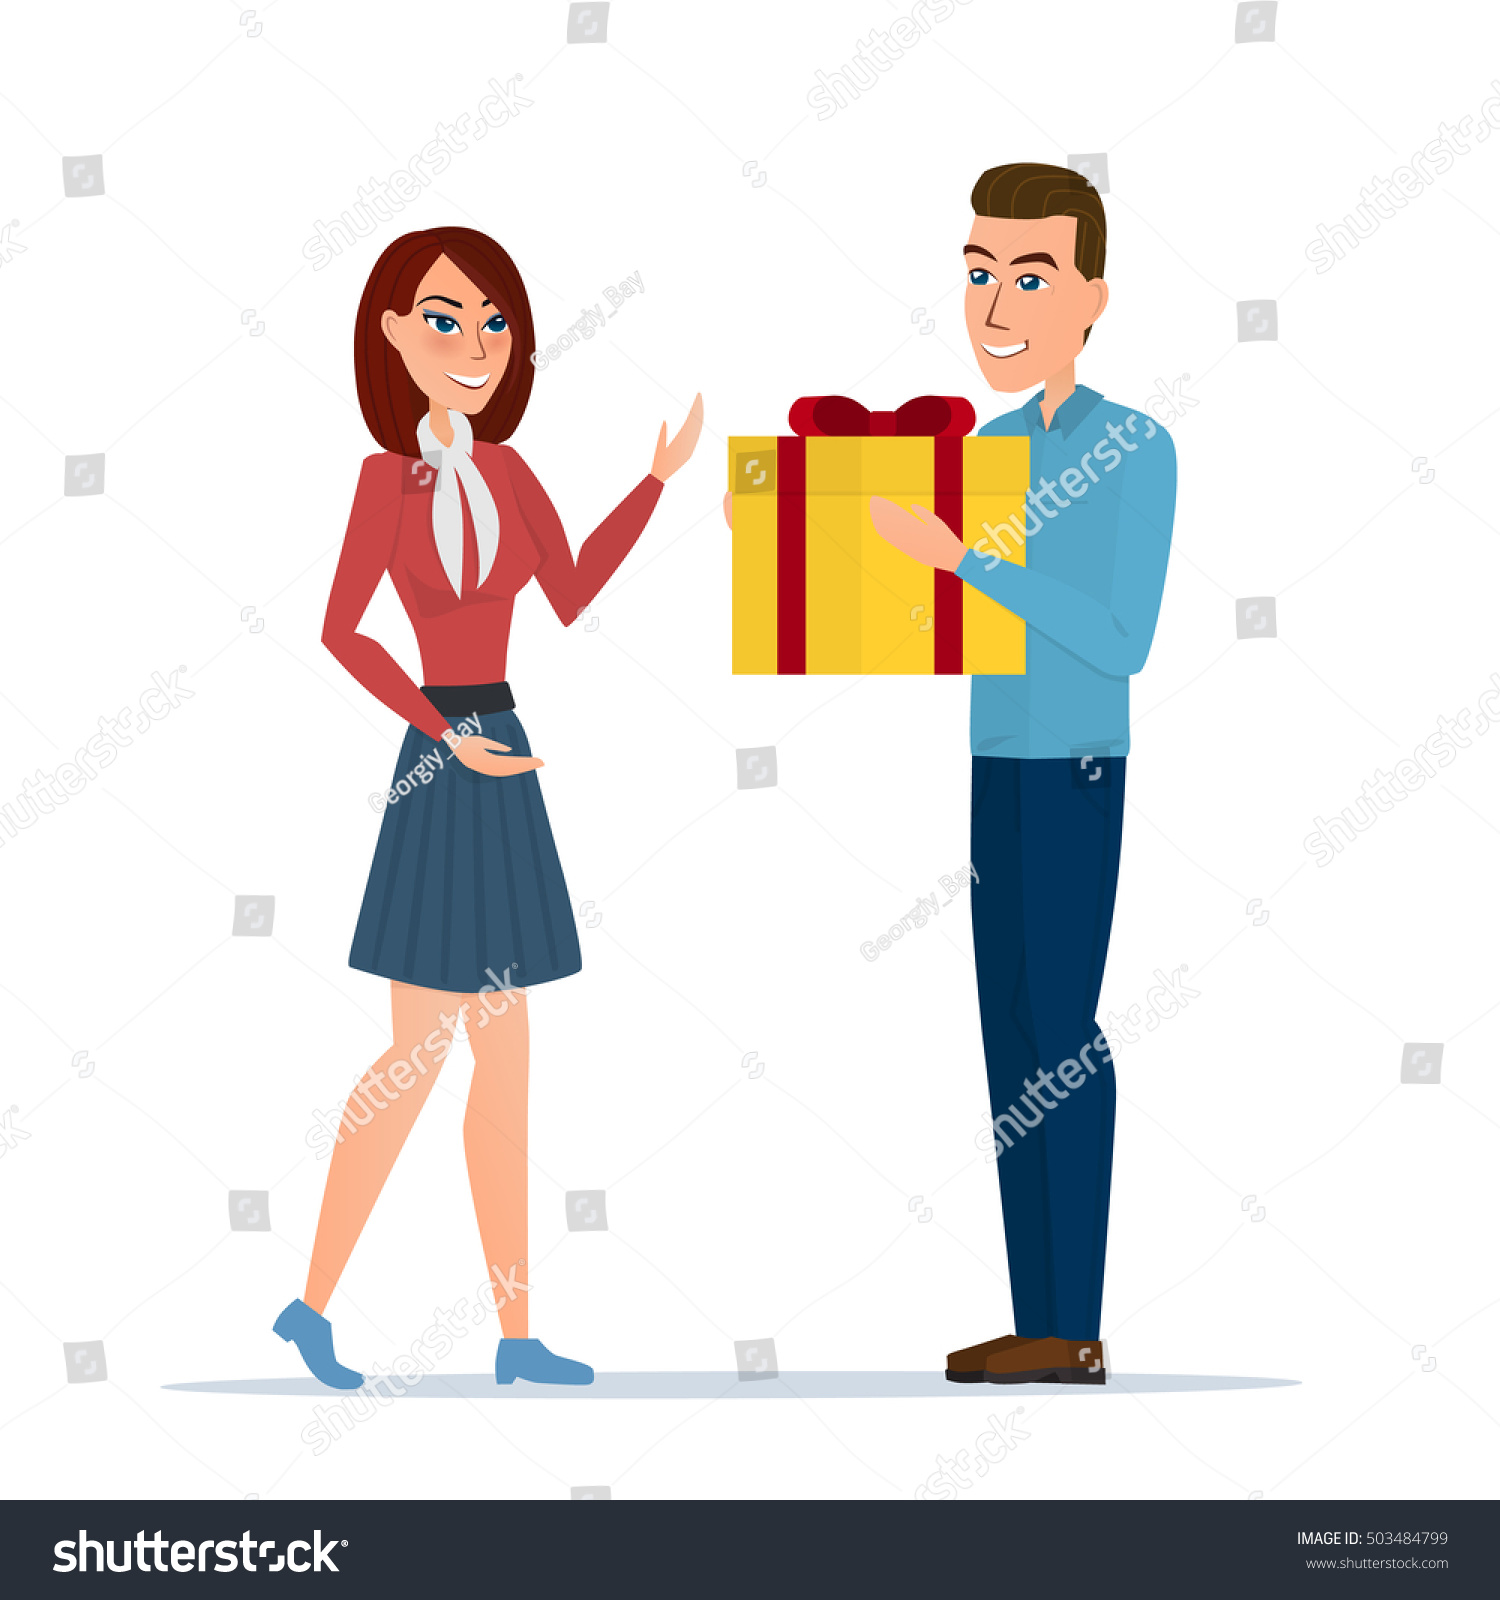 Cartoon boy giving girl gift box 503484799 cartoon boy giving girl a gift box vector illustration isolated on white background in flat negle Image collections